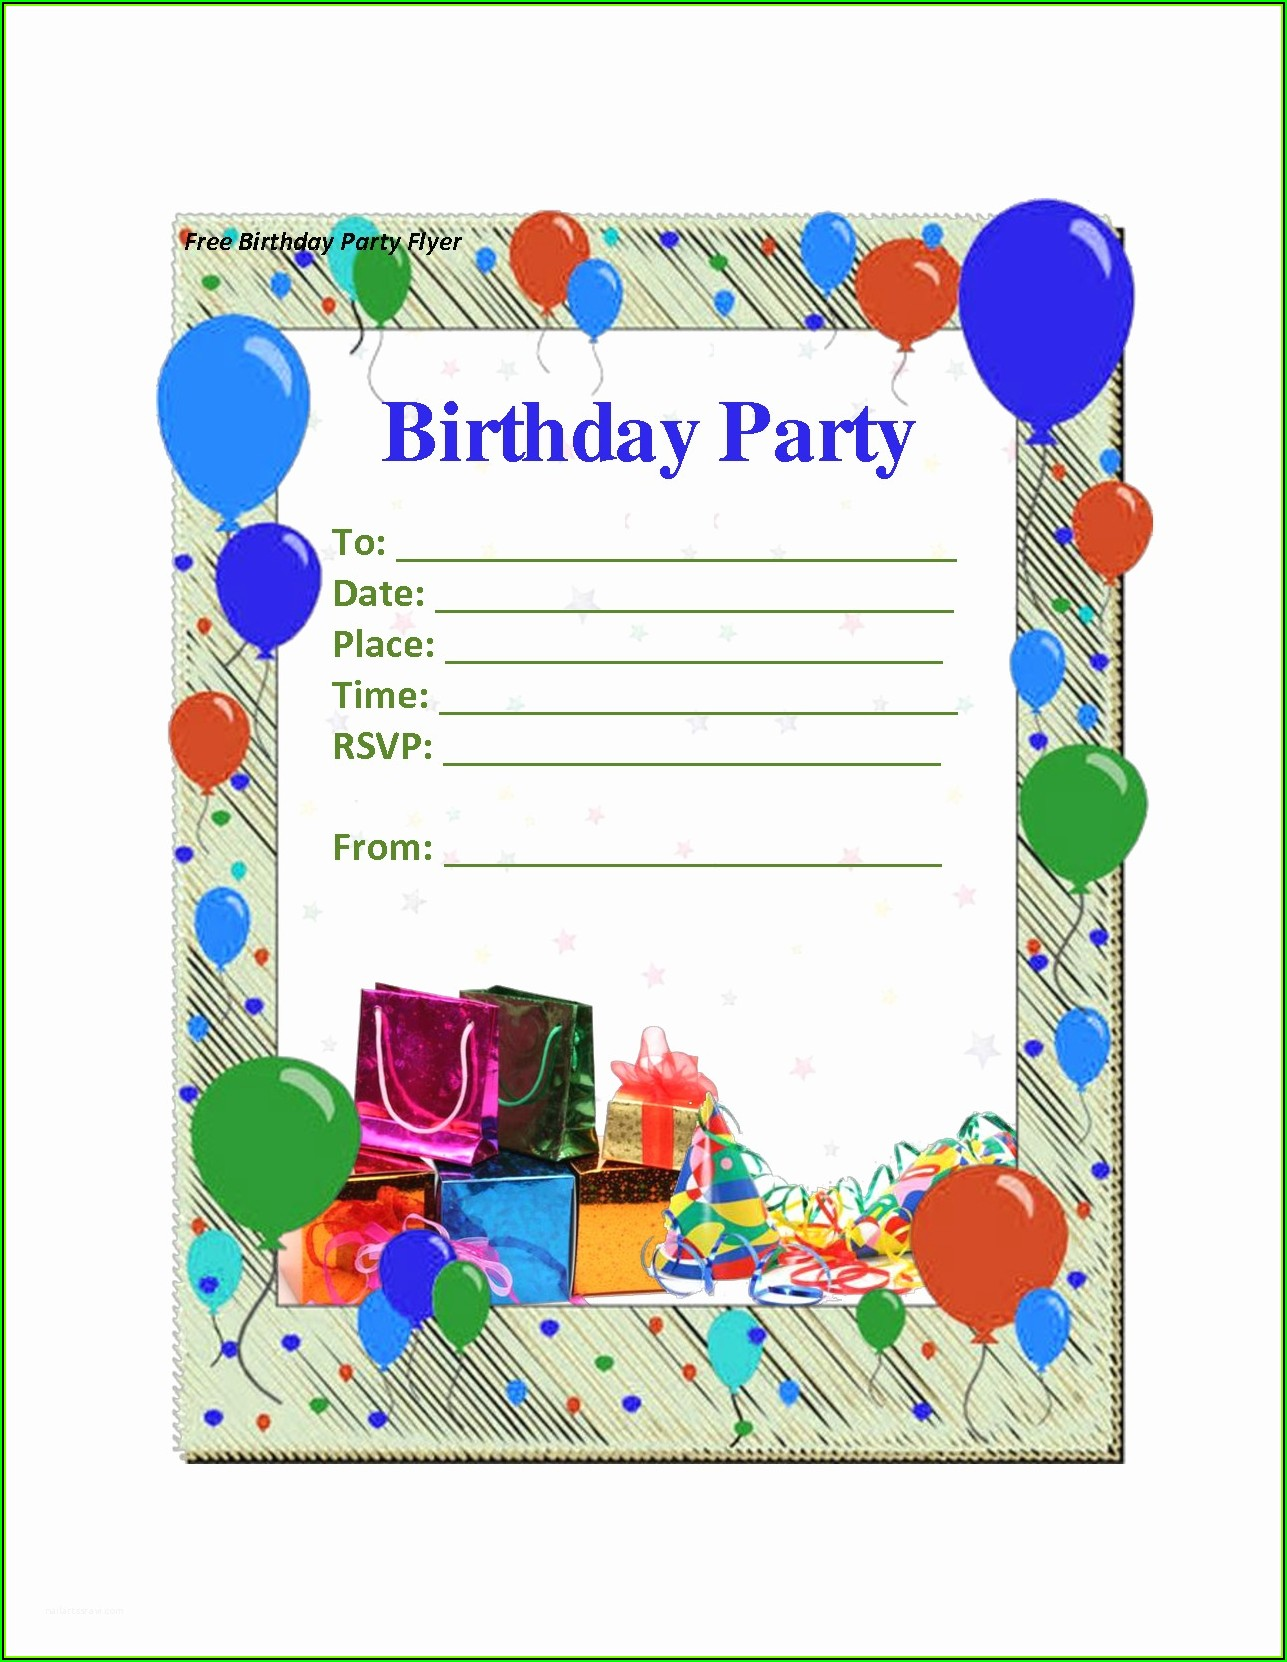 Birthday Party Invitation Template Printable